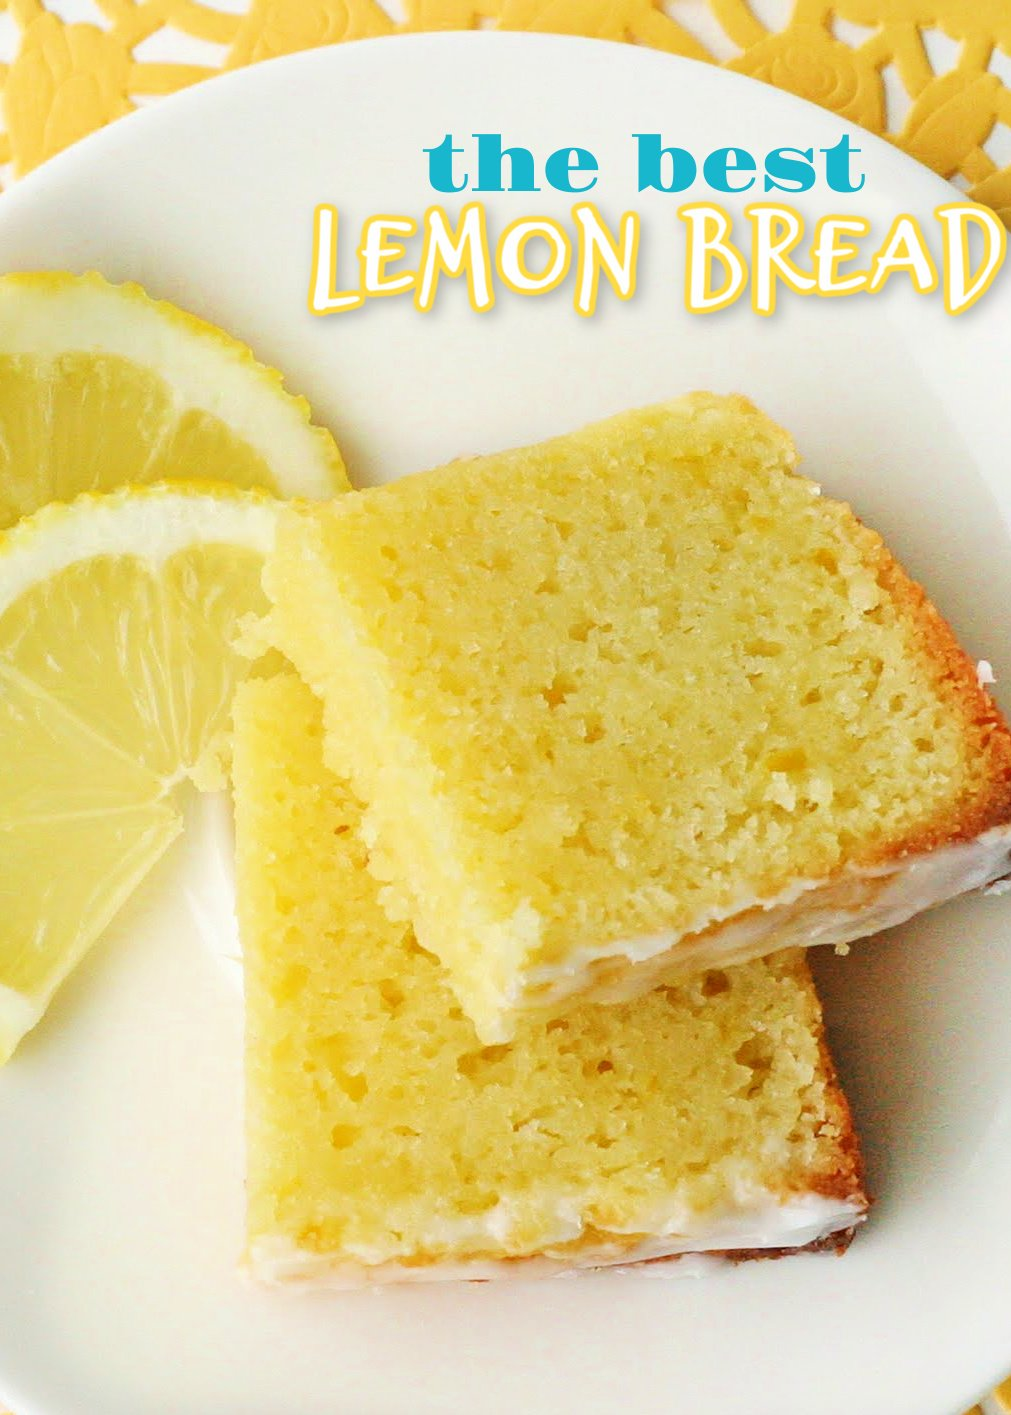 best lemon bread on white plate with text overlay